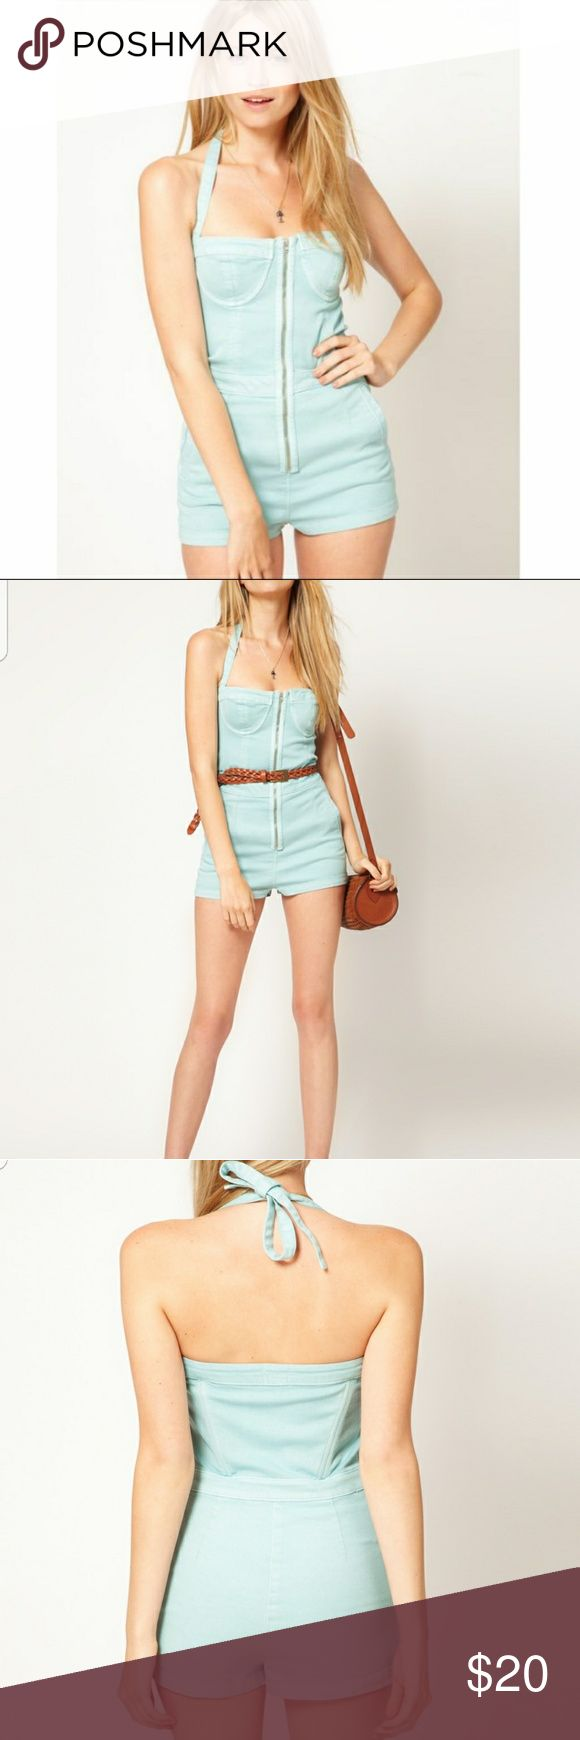 ASOS Denim Playsuit in Washed Turquoise Light Denim Blue Worn Once Condition: Unnoticeable Stain ASOS Pants Jumpsuits & Rompers